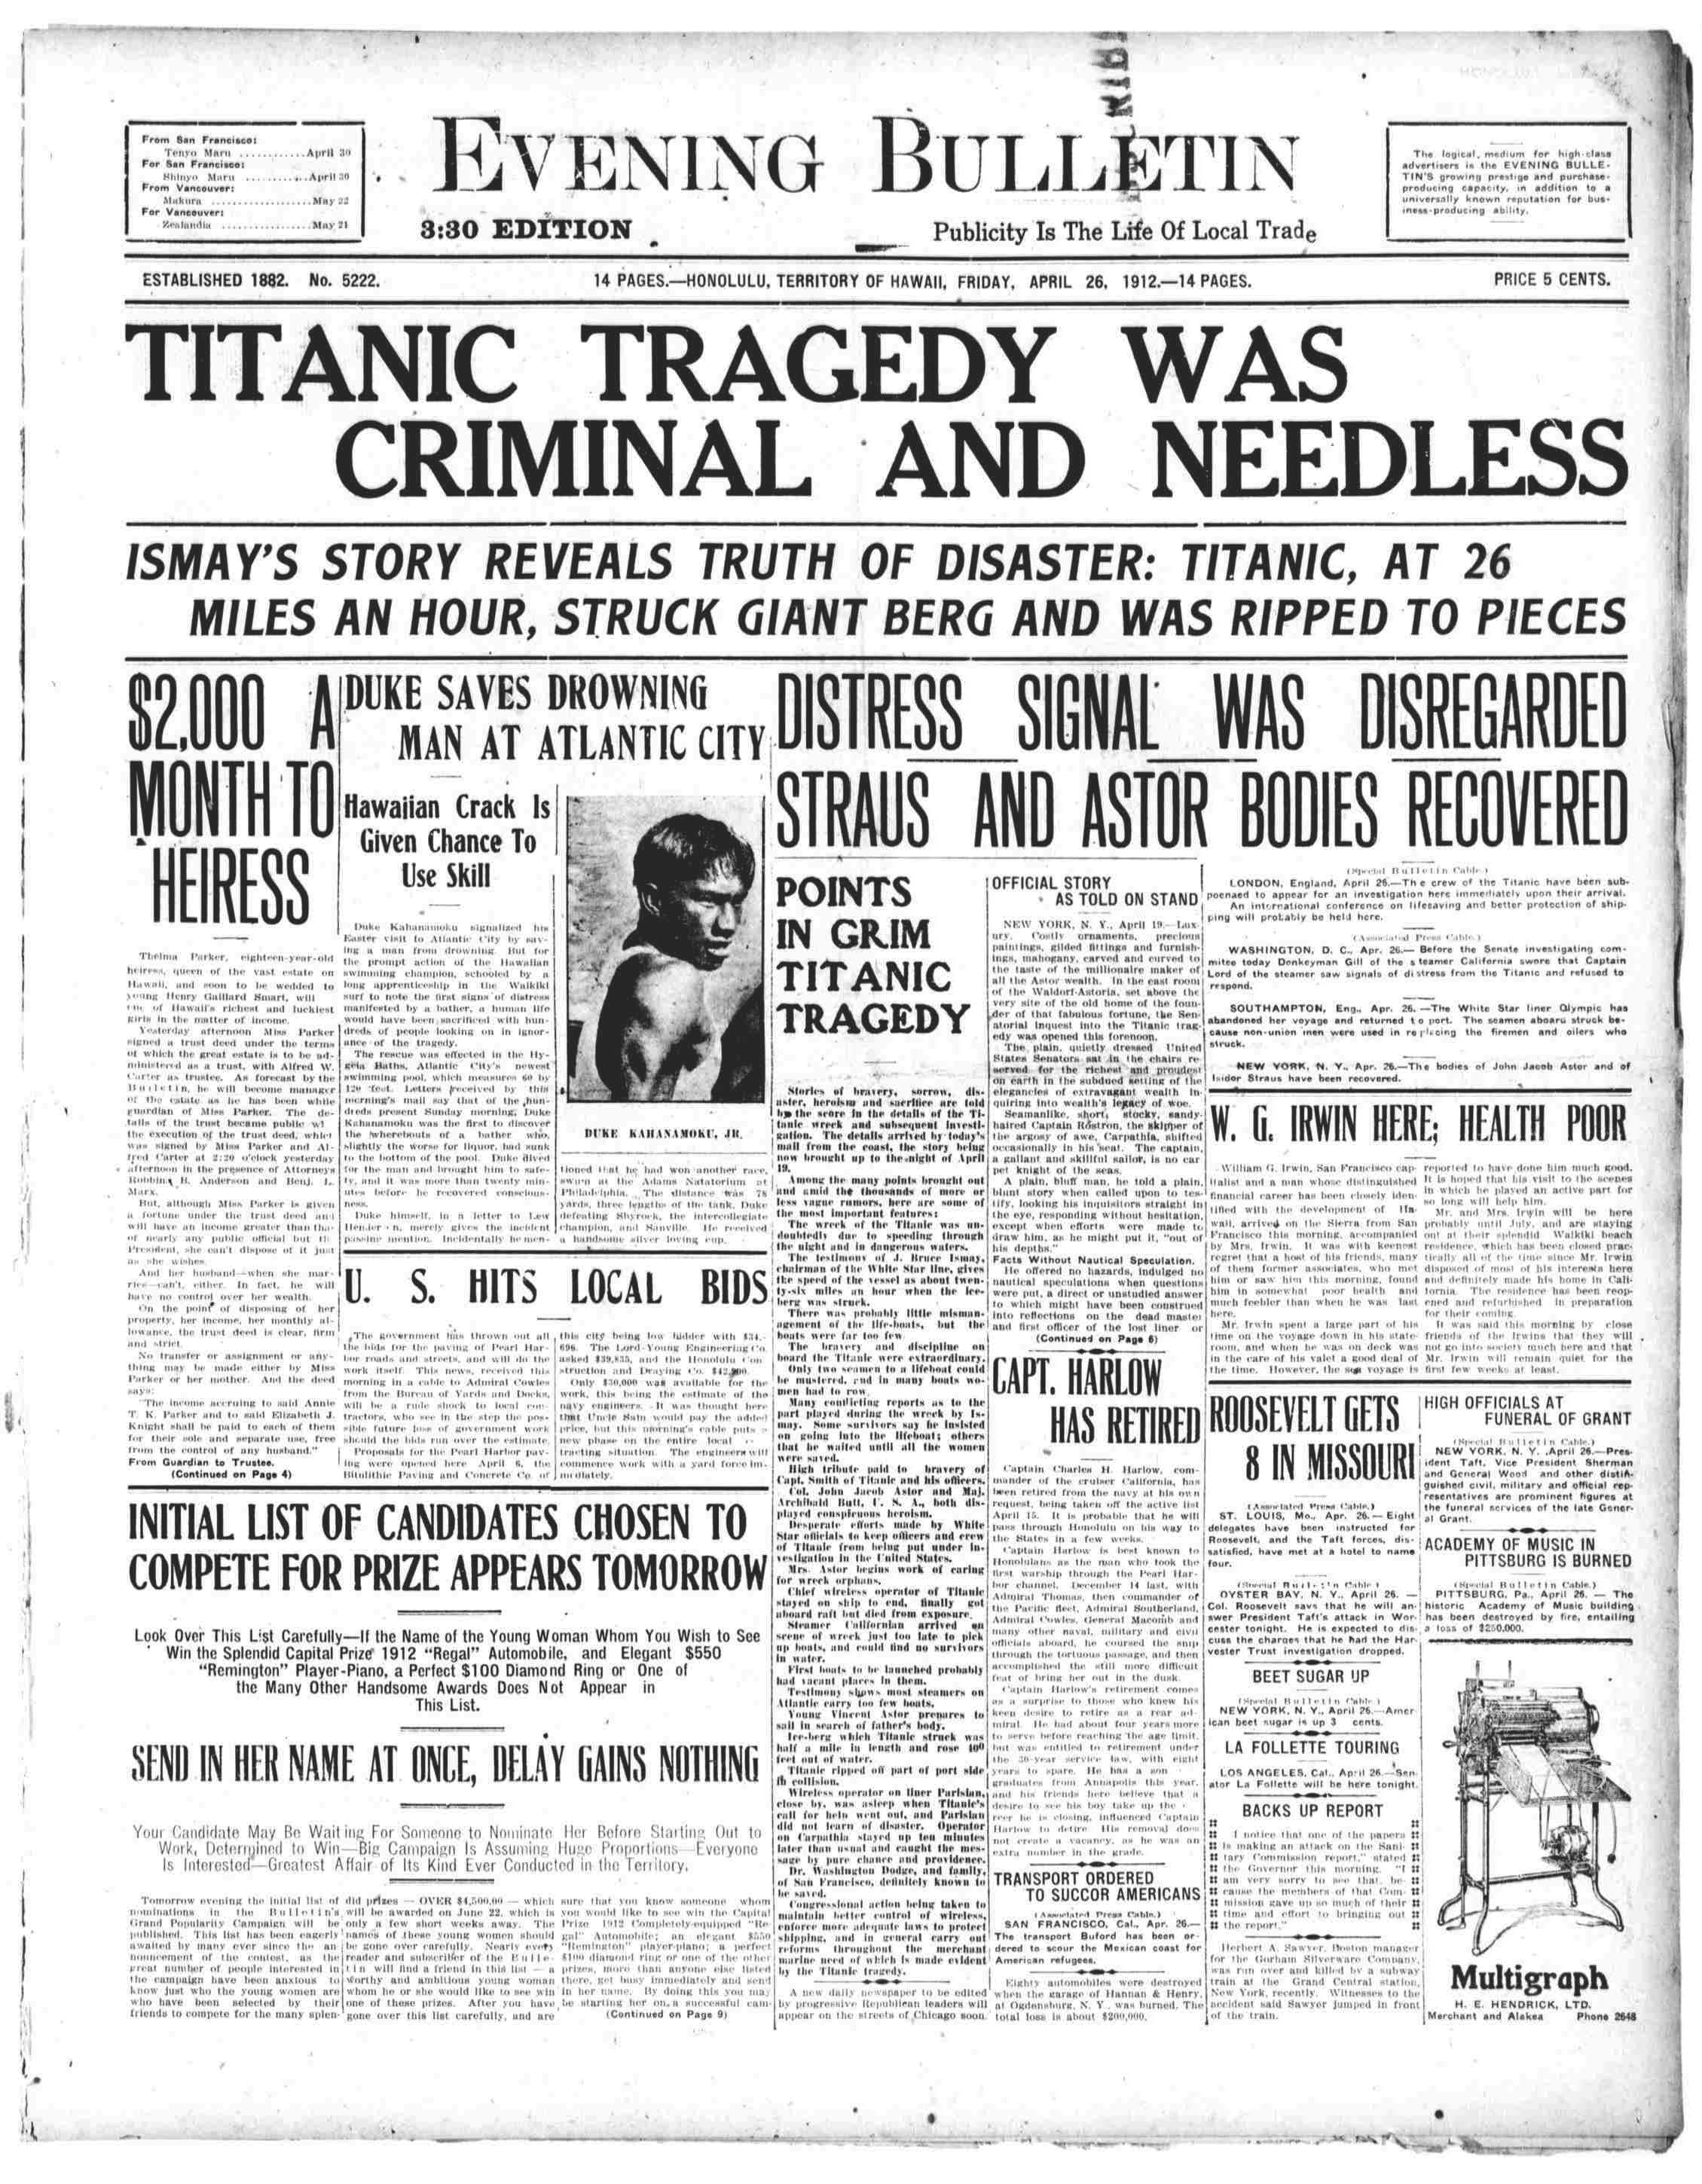 Titanic Newspaper Front Page 1912-04-26 Evening Bulletin (Honolulu, HI), April 26, 1912, 330 PM EDITION, Page 1.pdf